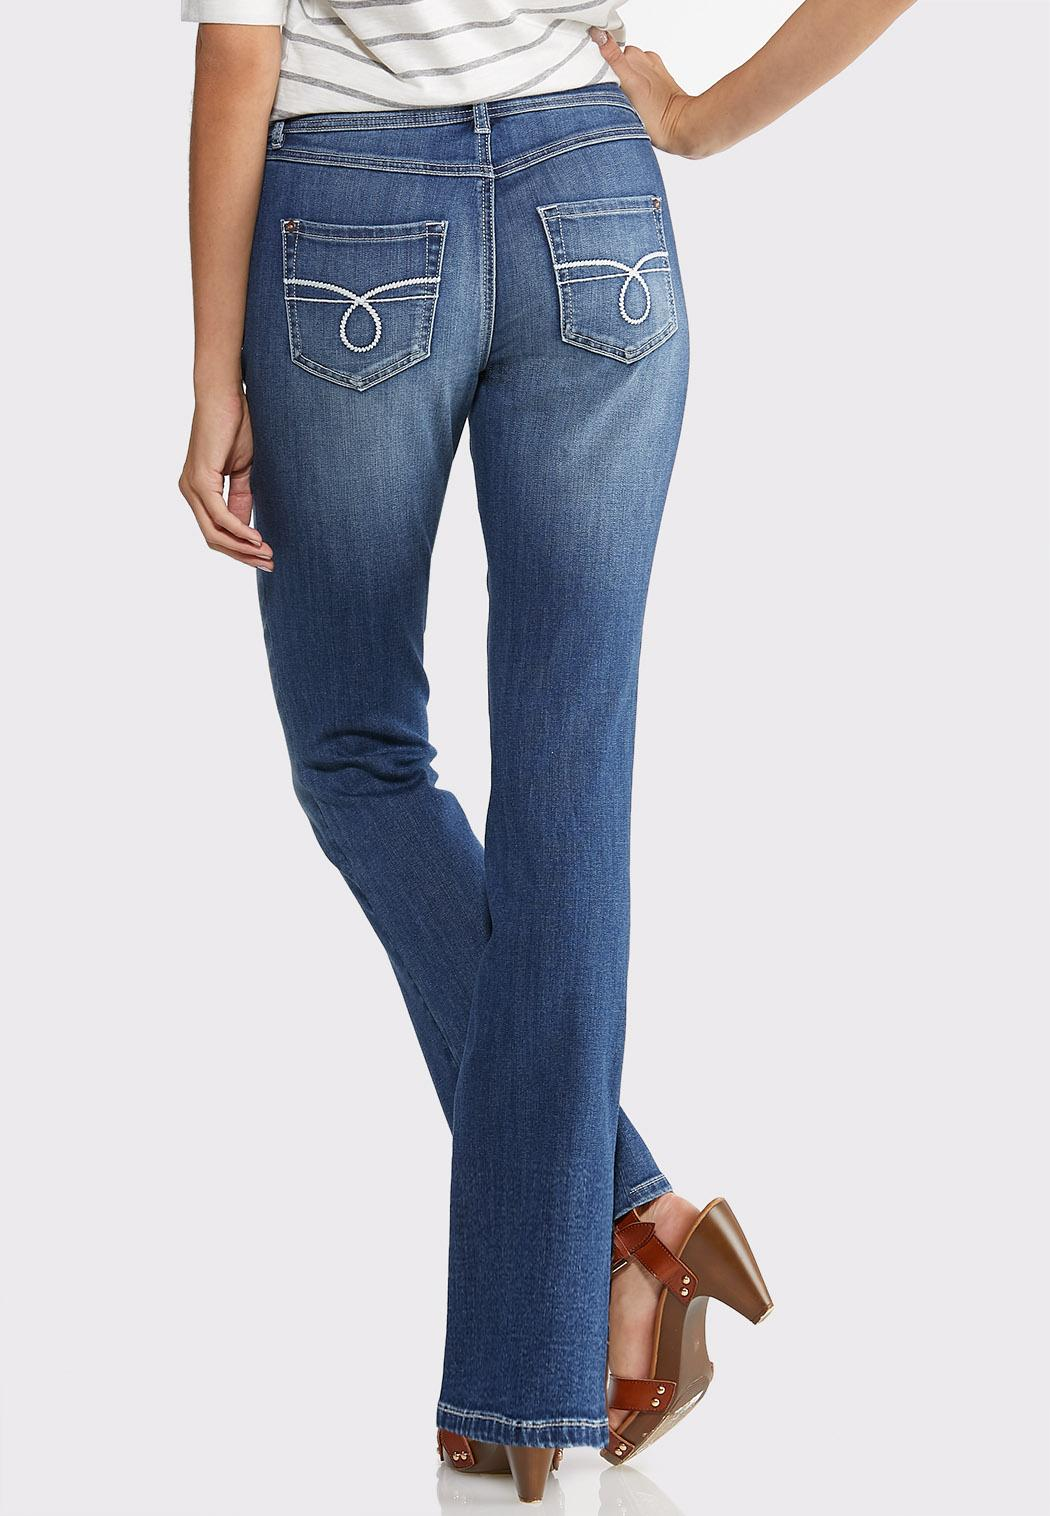 Dark Wash Bootcut Jeans (Item #43929303)